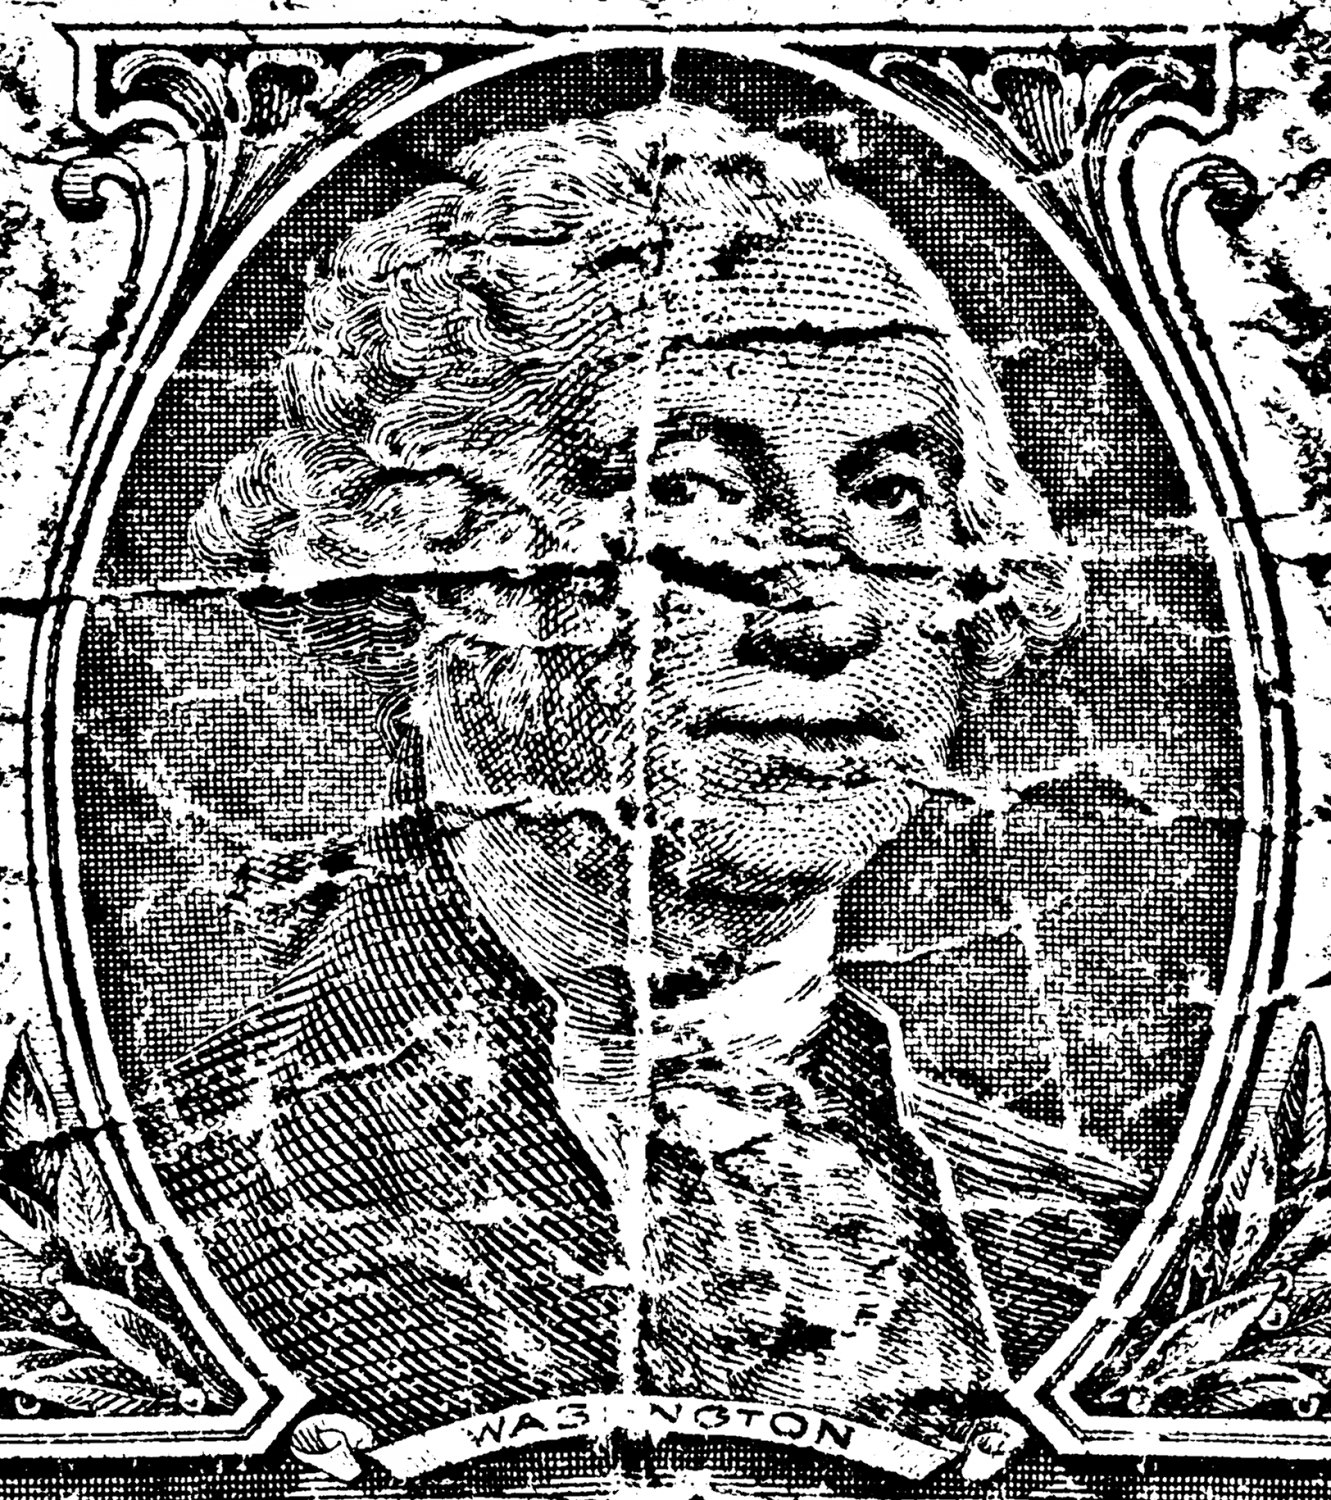 George Washington from the one dollar bill - old and wrinkled - Old money - Techno-Impressionist Museum - Techno-Impressionism - art - beautiful - photo photography picture - by Tony Karp